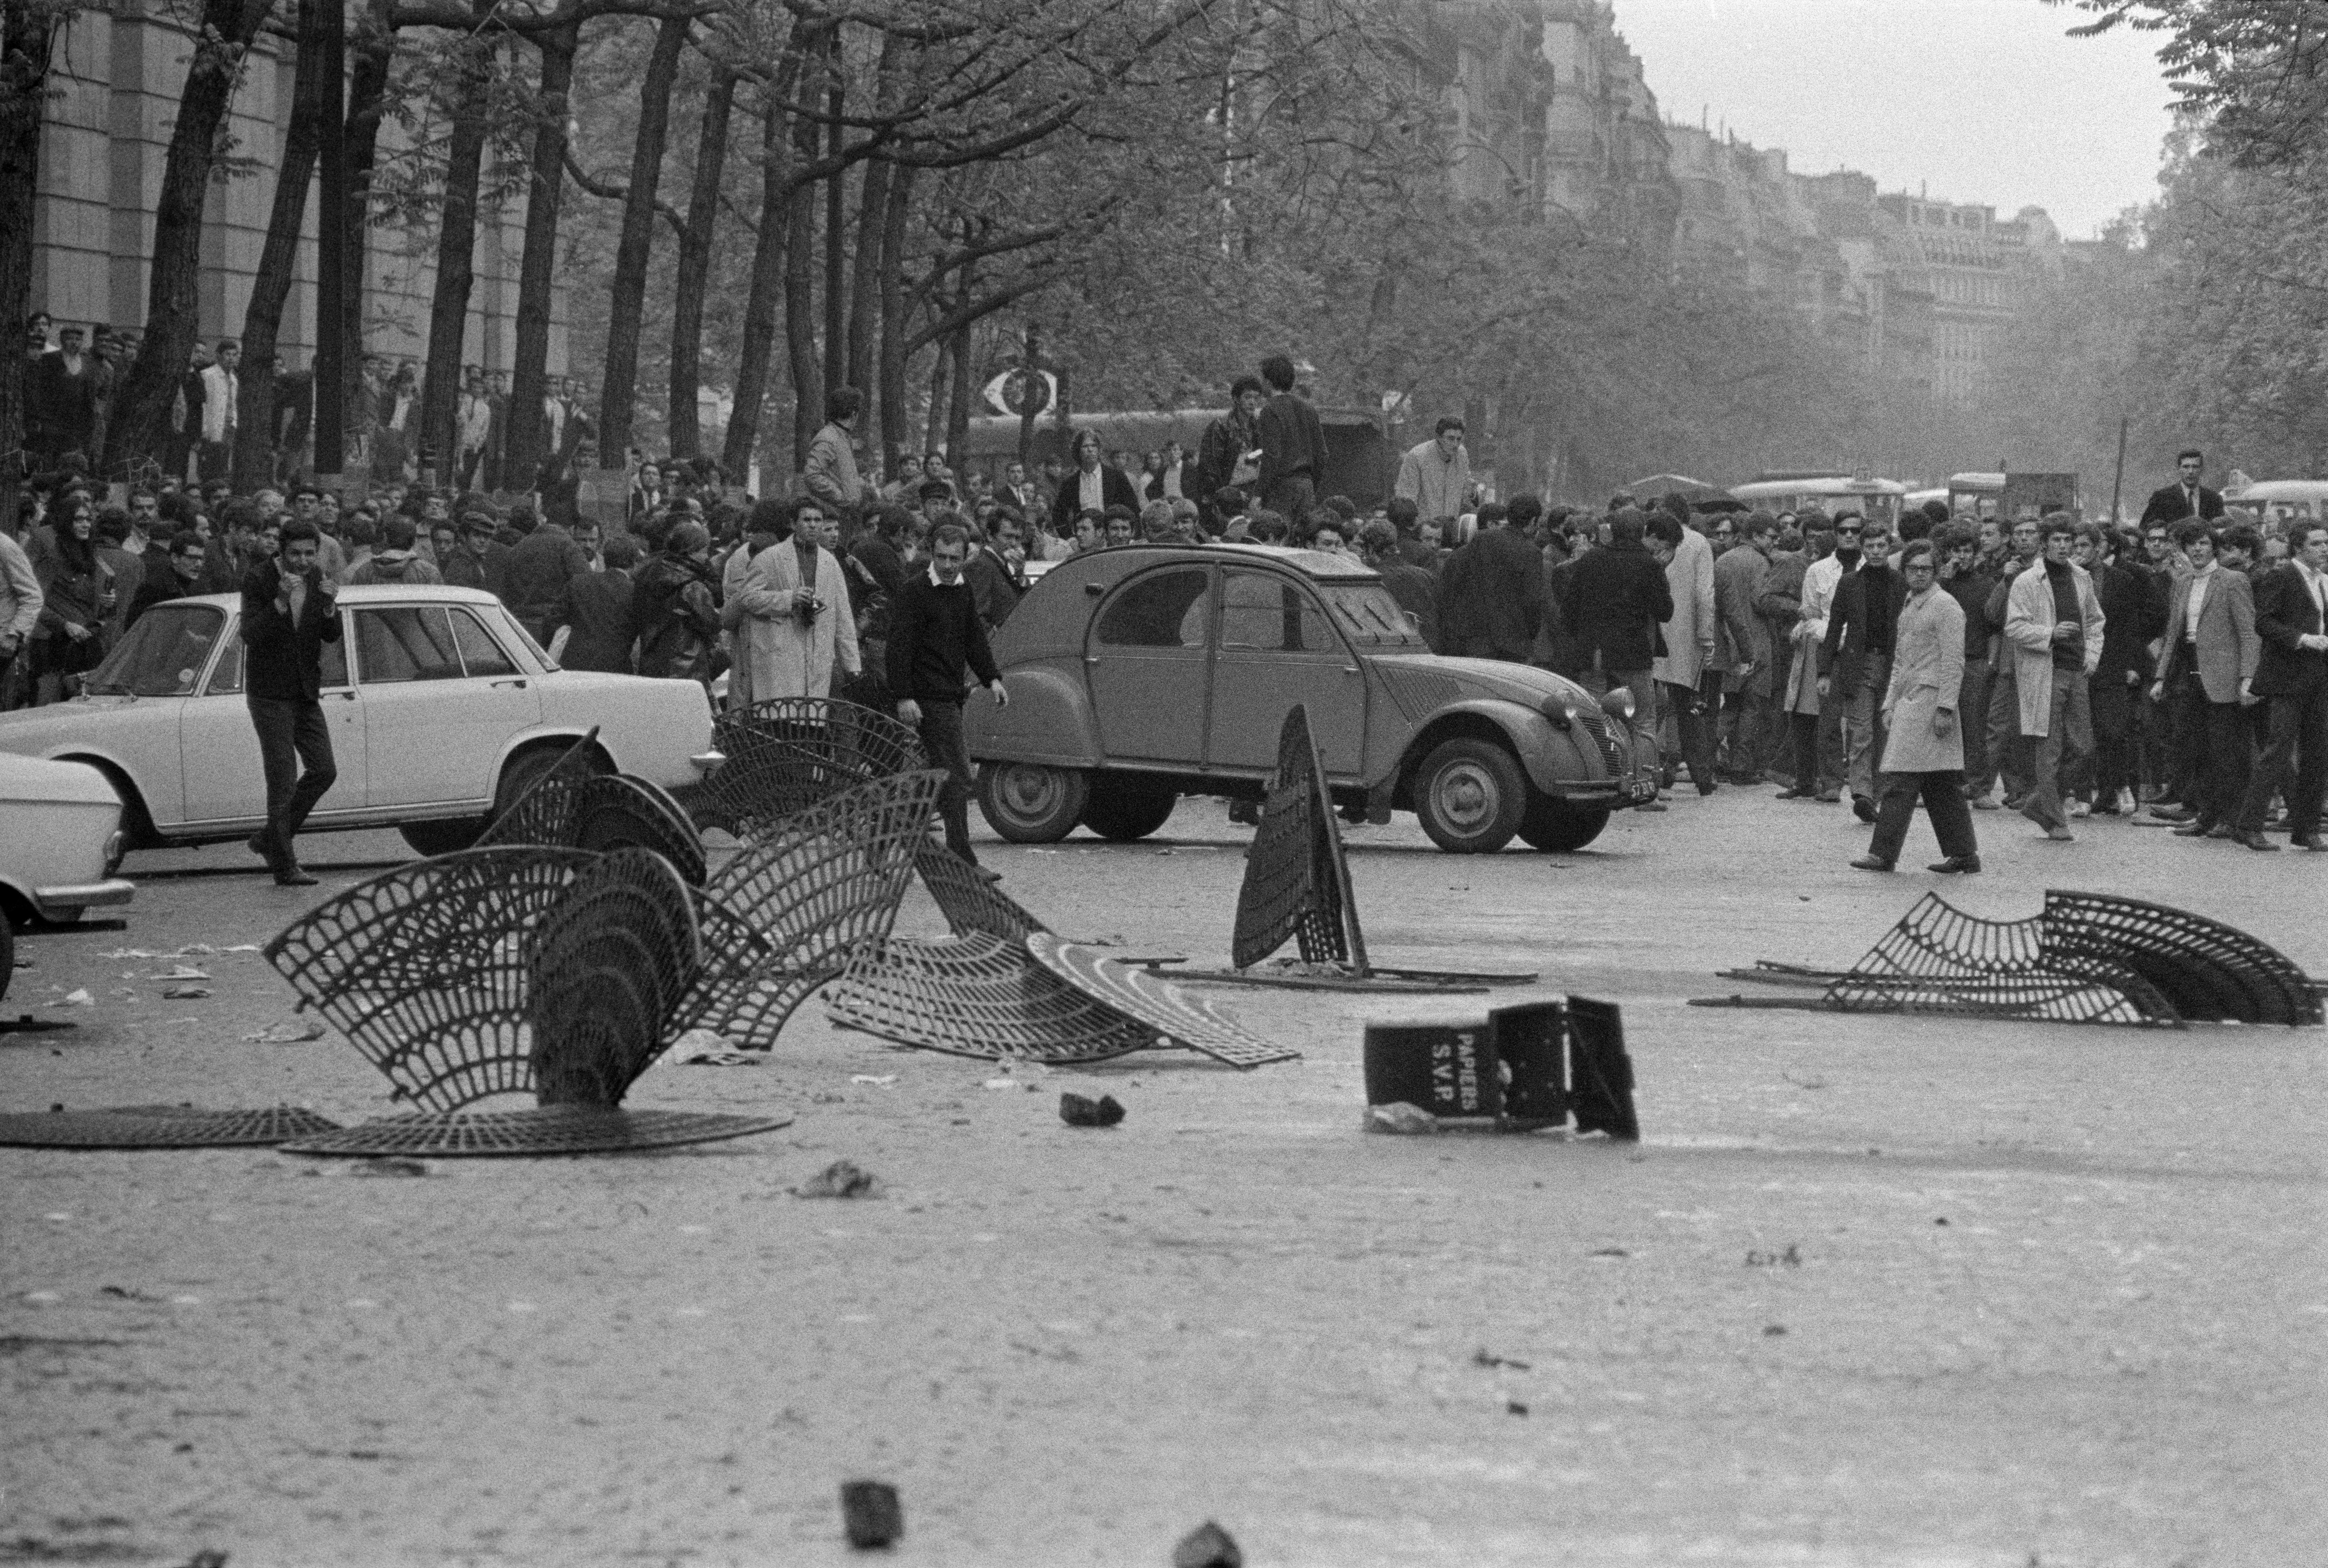 FRANCE. Paris. May '68 events.